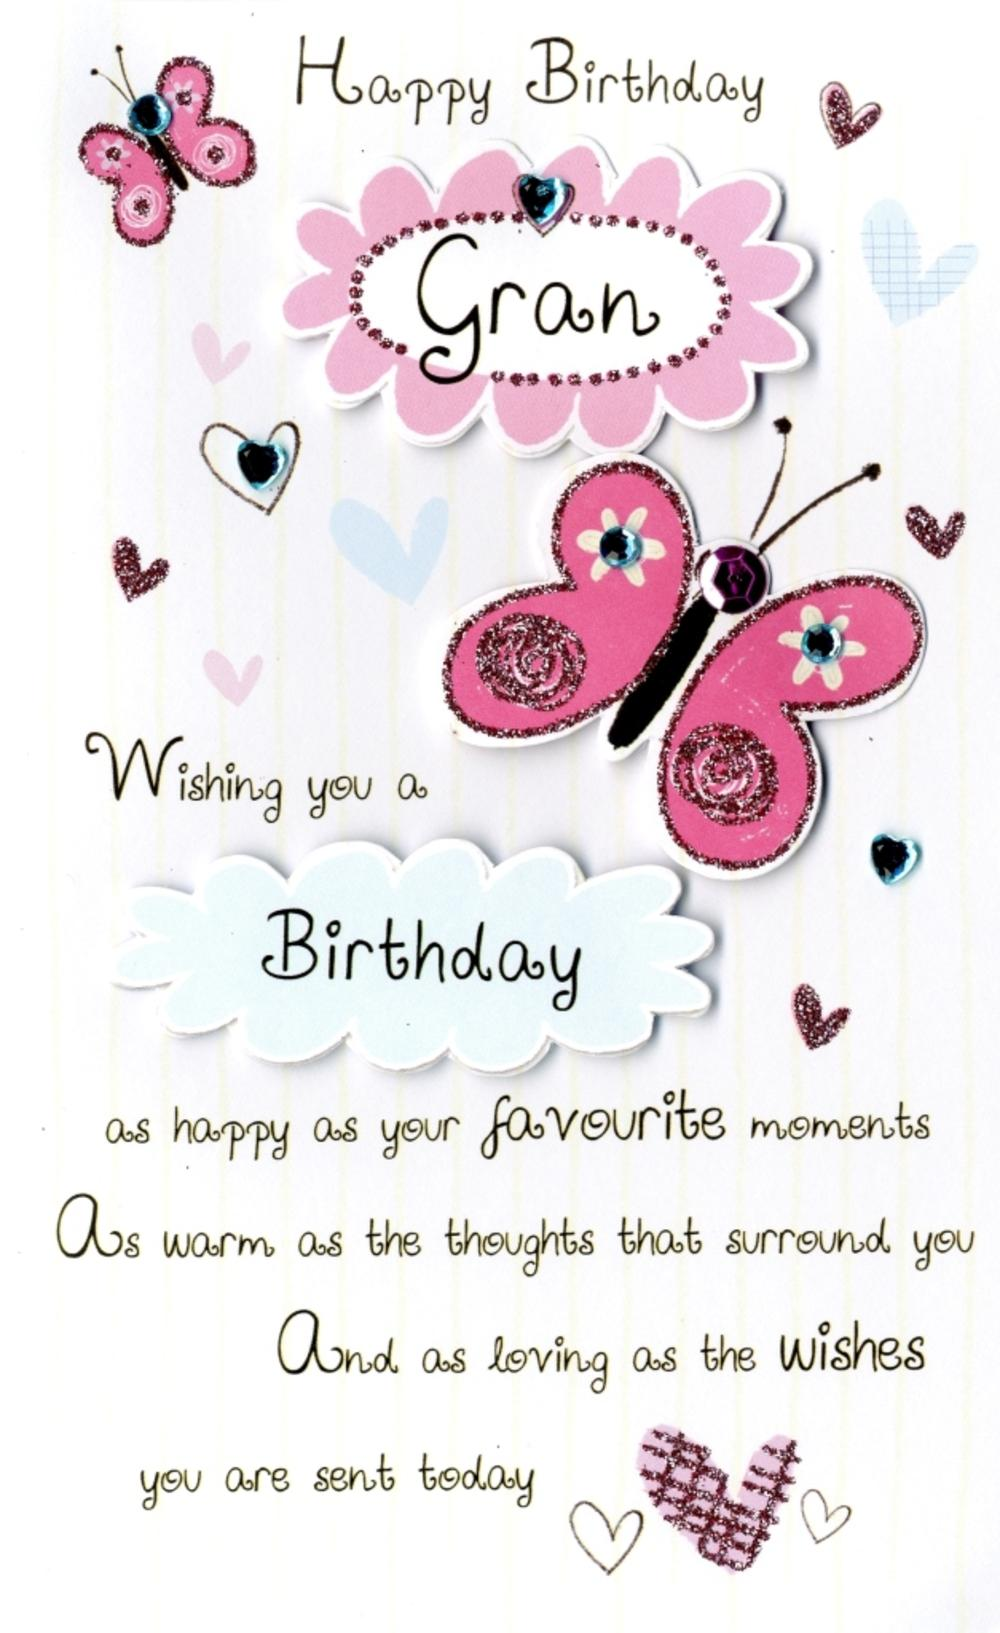 One I Love Birthday Cards wedding invitation styles free – Birthday Cards for a Loved One